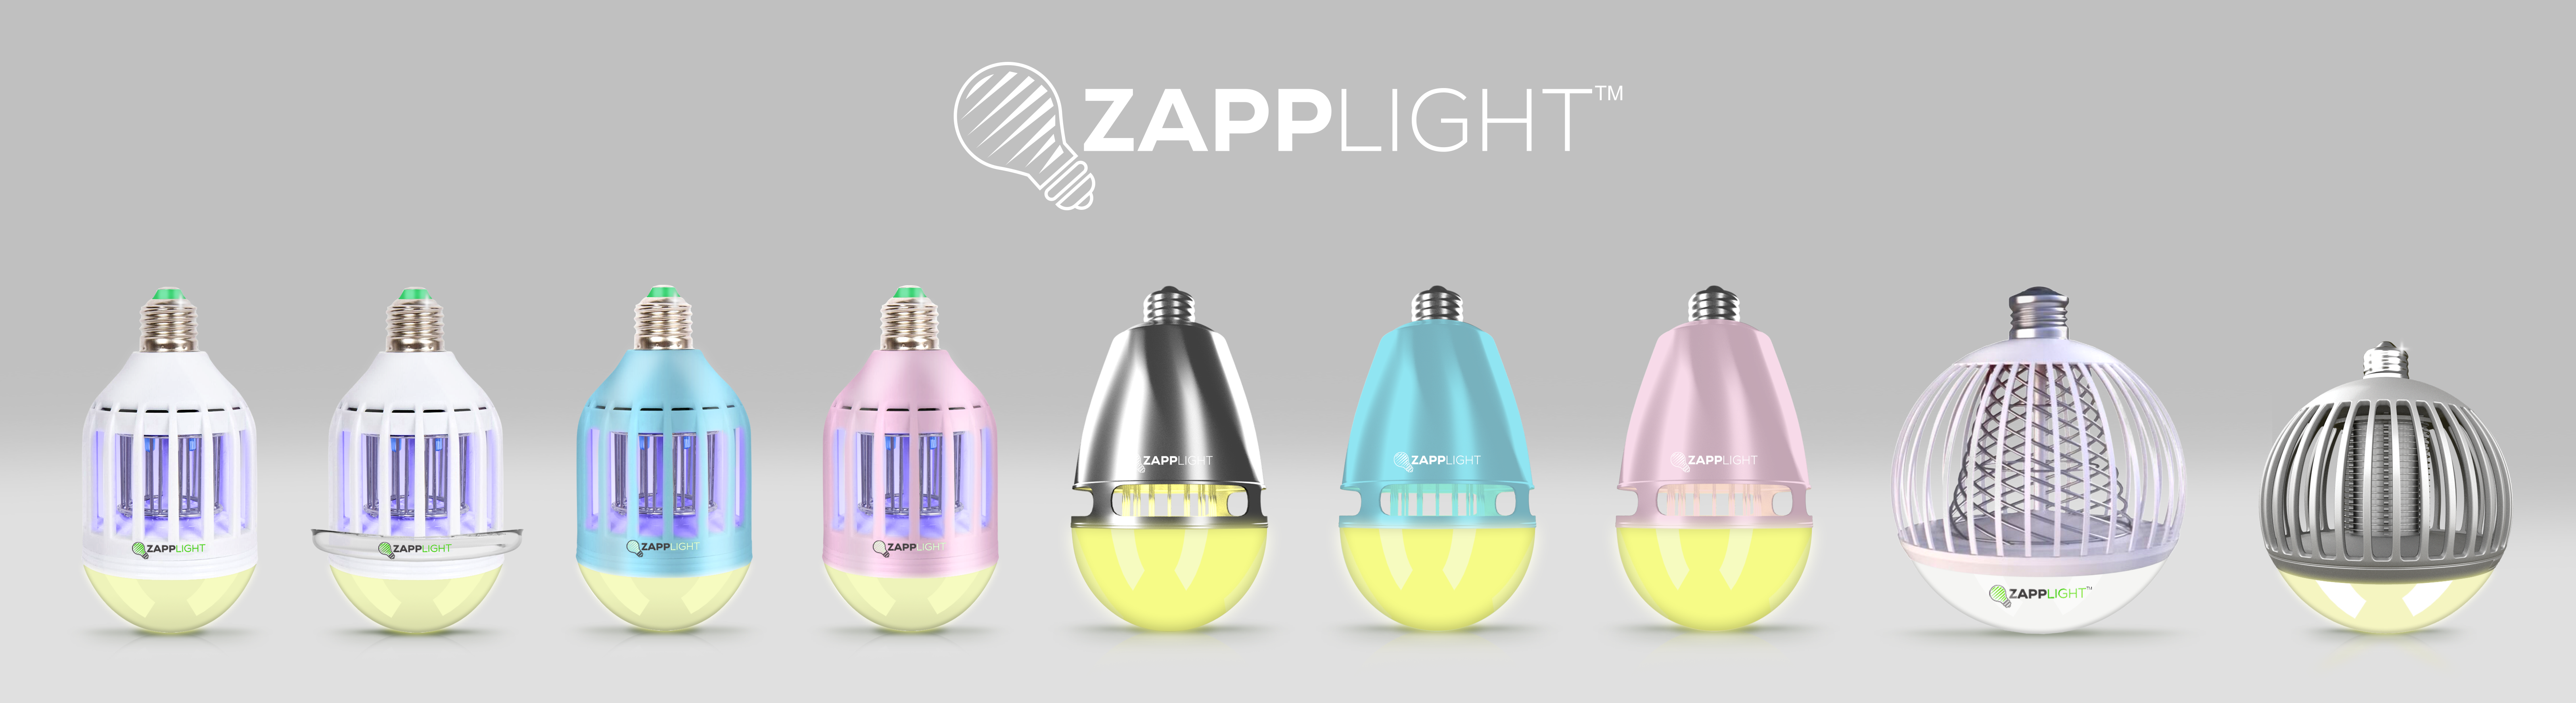 ZappLight Introduces World\'s 1st 2-in-1 LED Bug Zapper Light Bulb ...